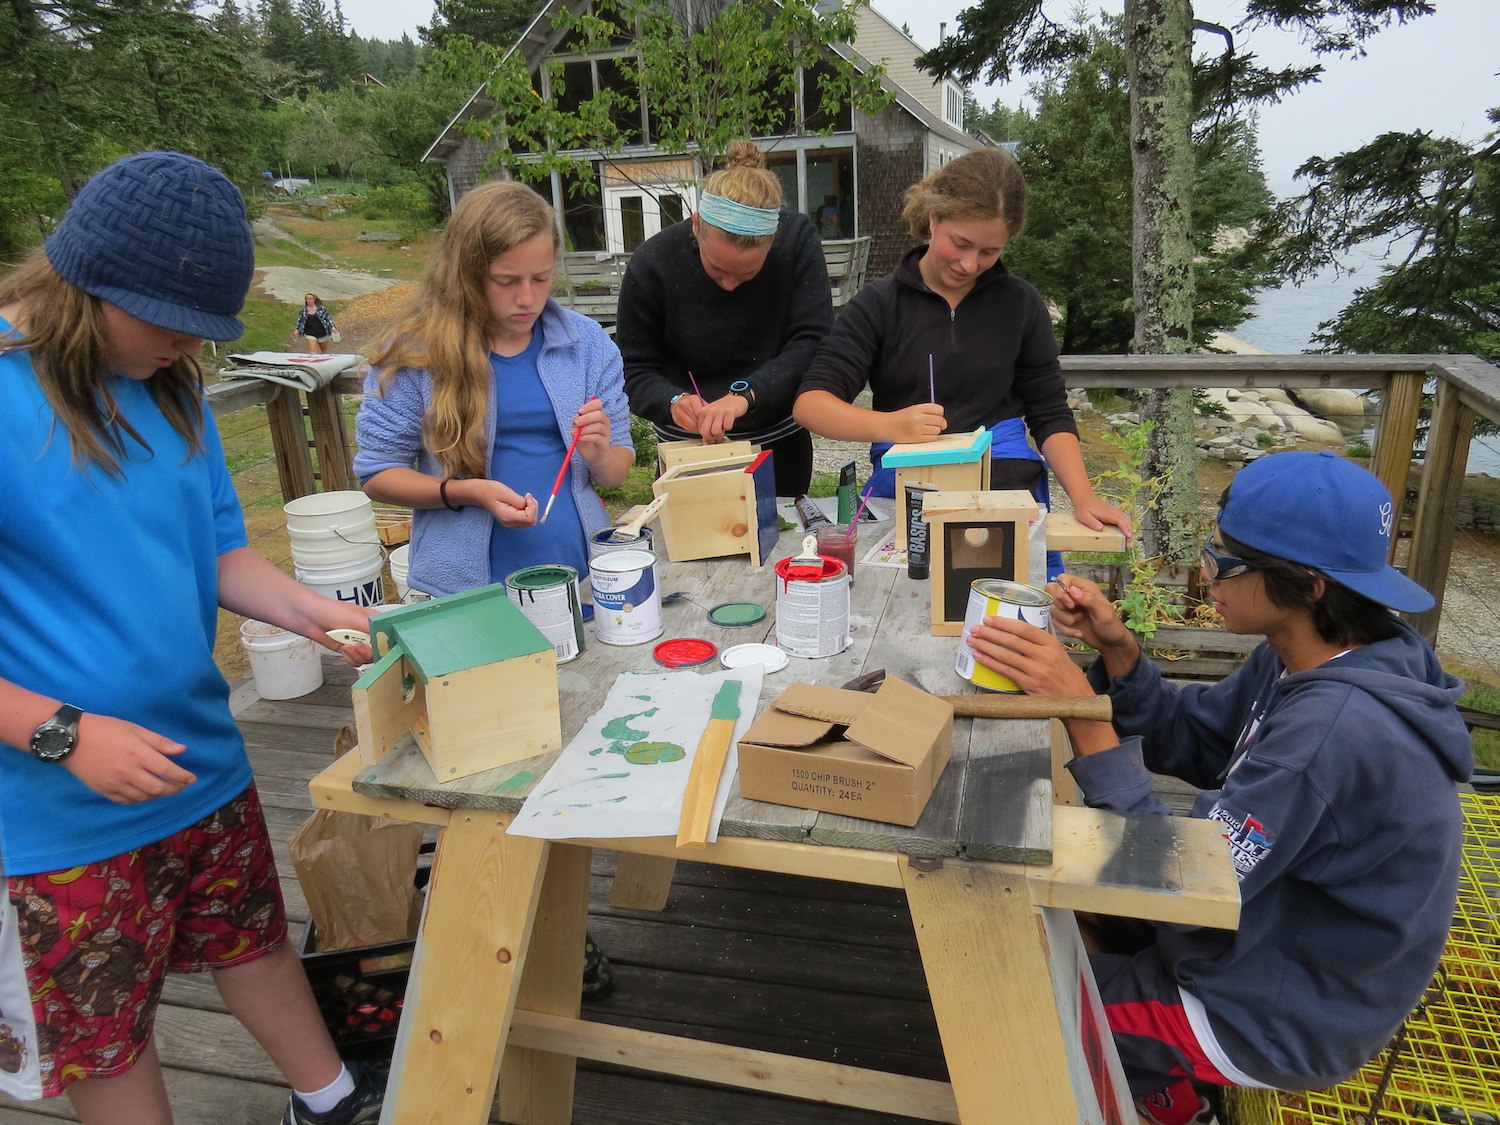 Students build birdhouses. Click through for more photos from the program.